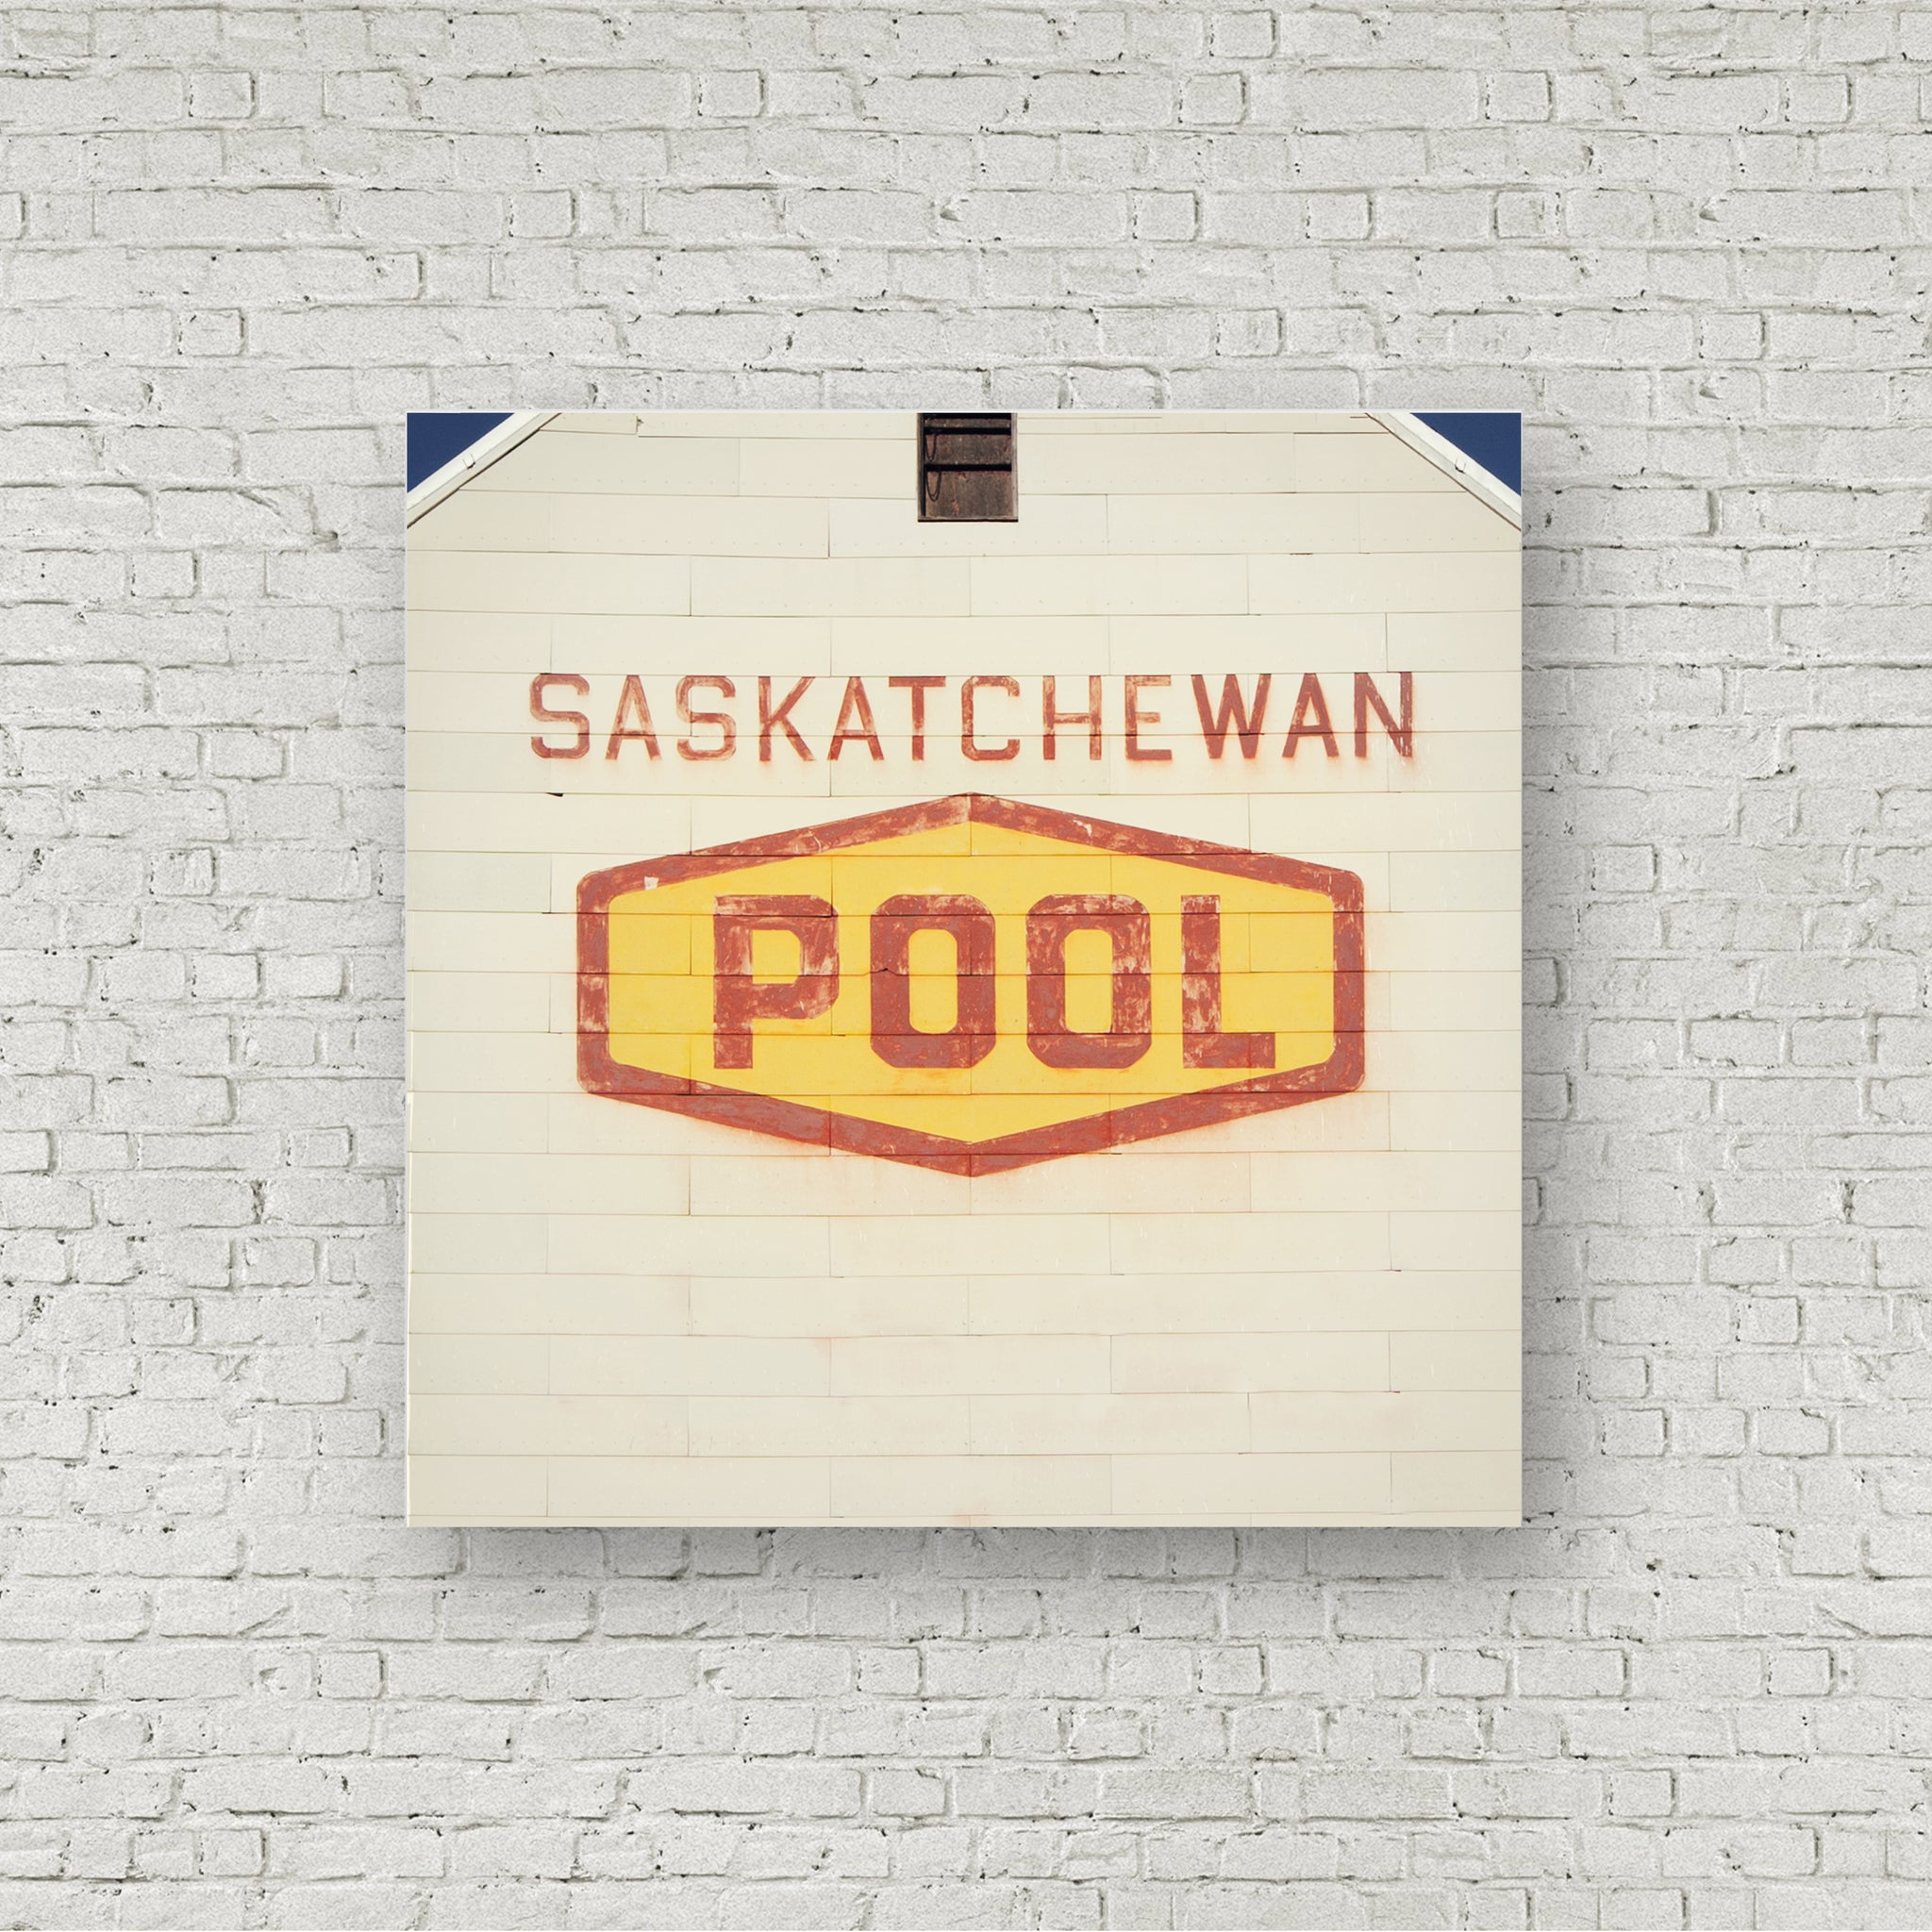 Saskatchewan Wheat Pool